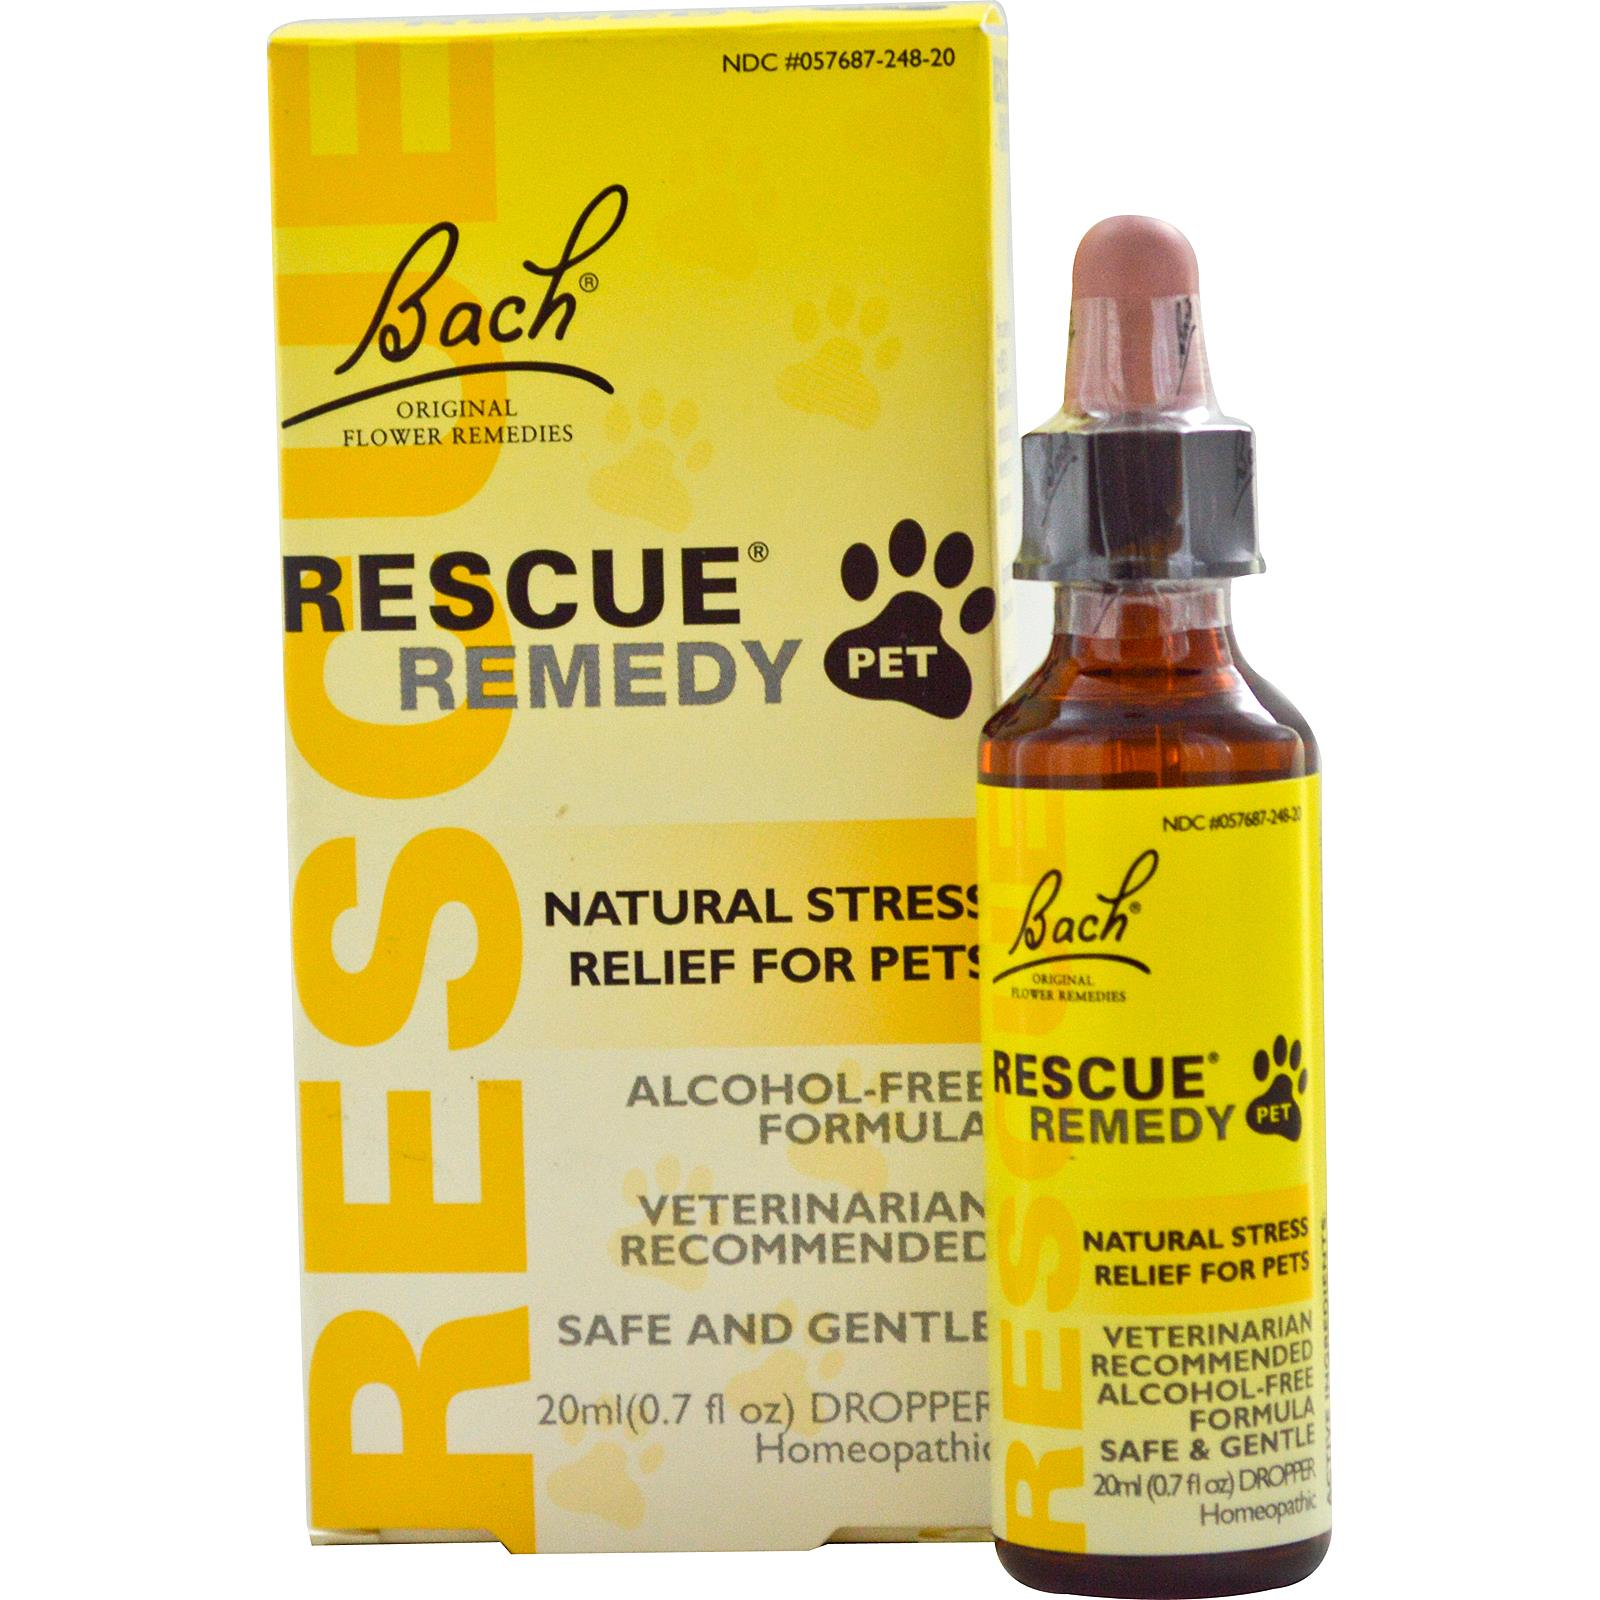 Can You Use Rescue Remedy On Dogs